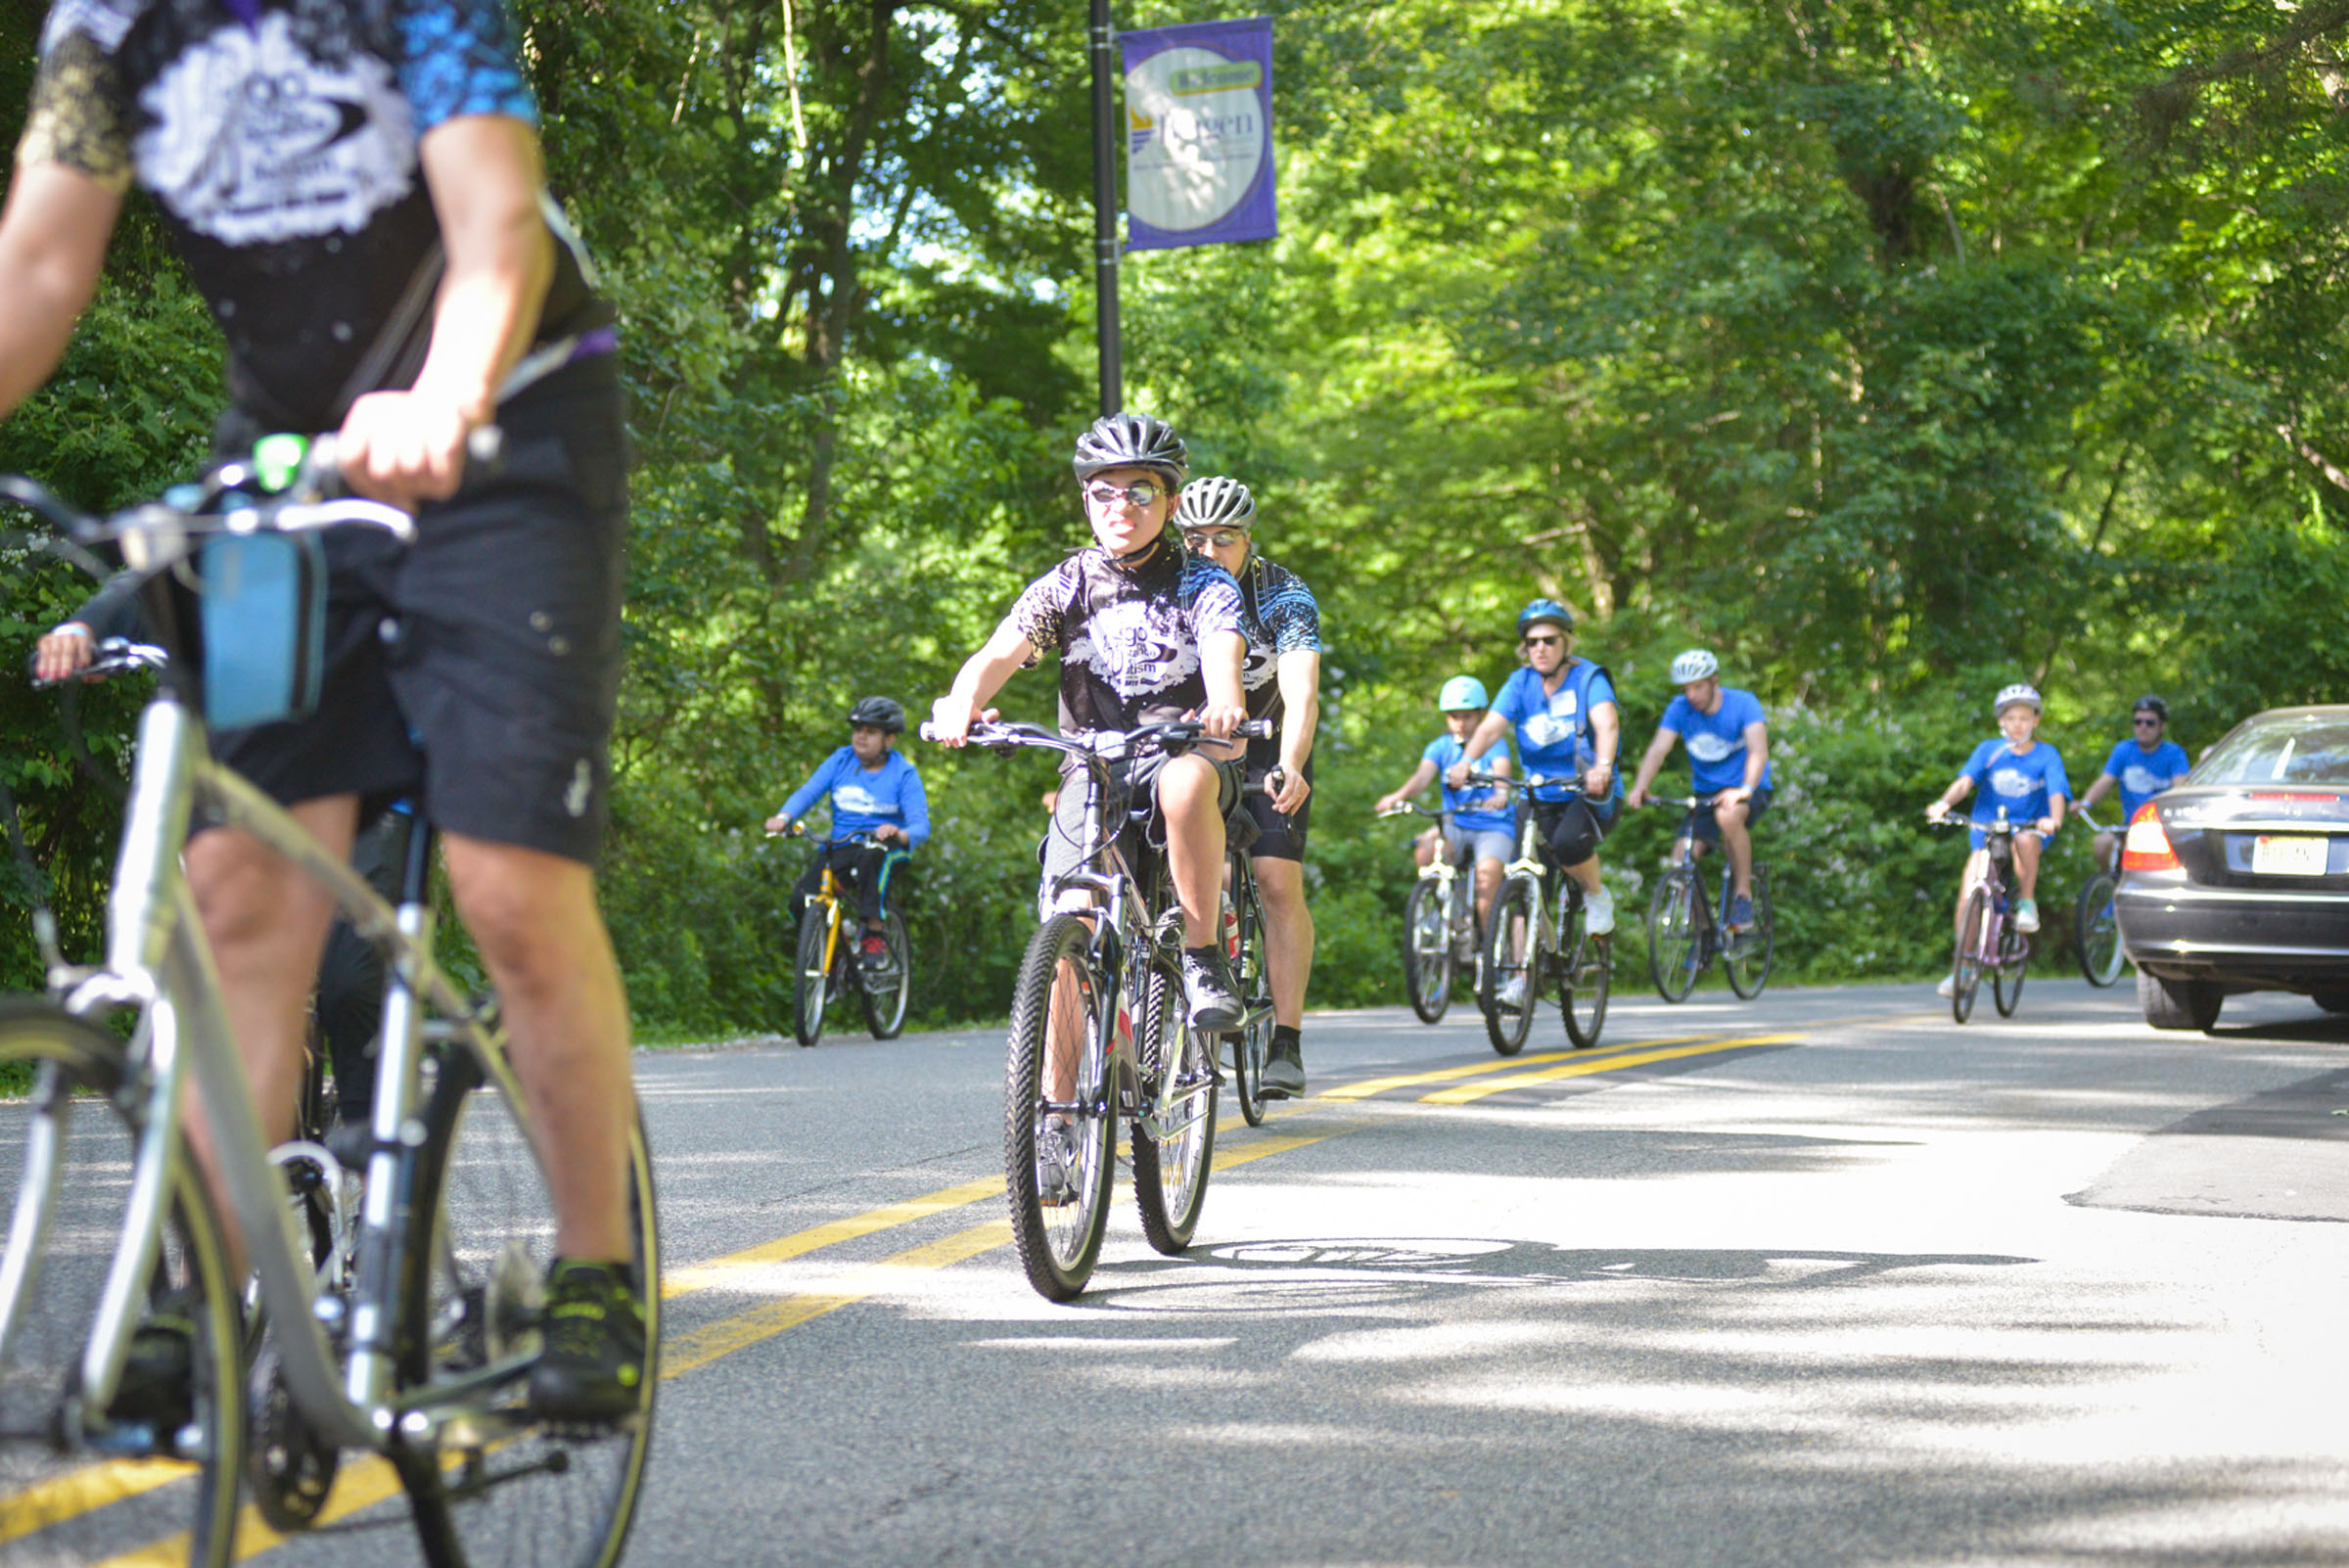 2017-06-04 GTD4A Charity Bike Ride - BCC - Paramus NJ-2054.jpg